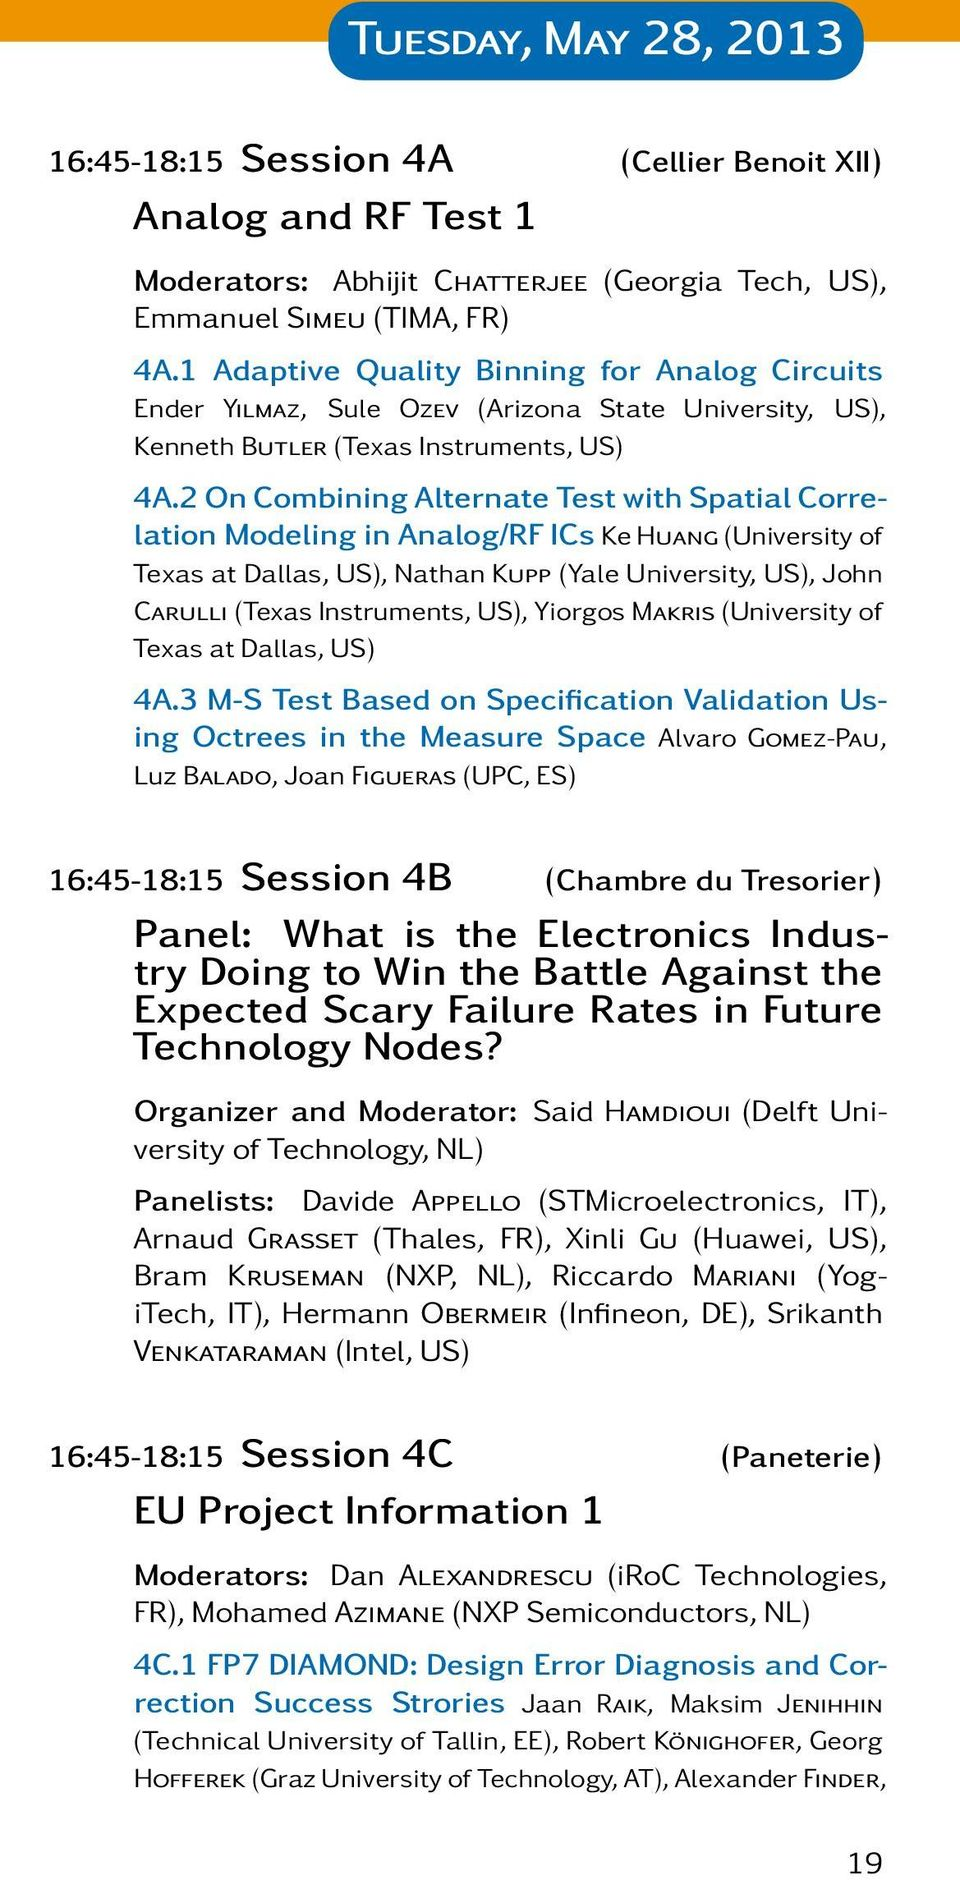 2 On Combnng Alernae Tes wh Spaal Correlaon Modelng n Analog/RF ICs Ke Huang (Unversy of Texas a Dallas, US), Nahan Kupp (Yale Unversy, US), John Carull (Texas Insrumens, US), Yorgos Makrs (Unversy